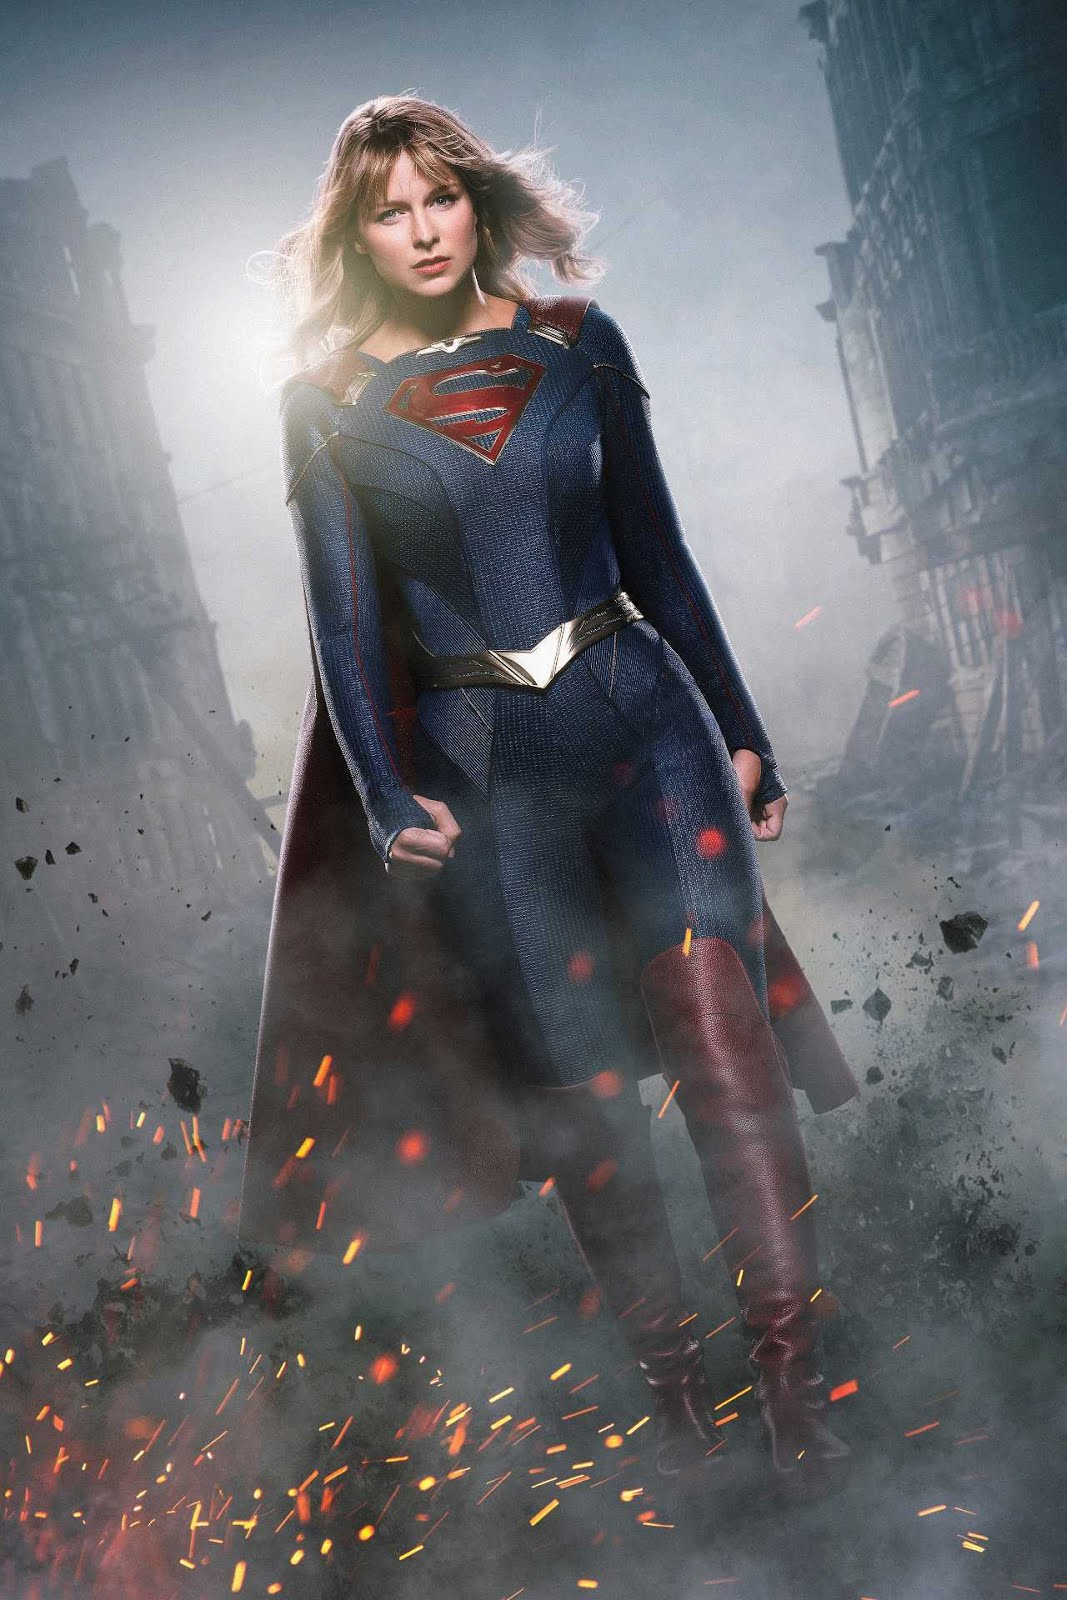 Supergirl S05E02 300MB HDTV 720p x264 Free Download